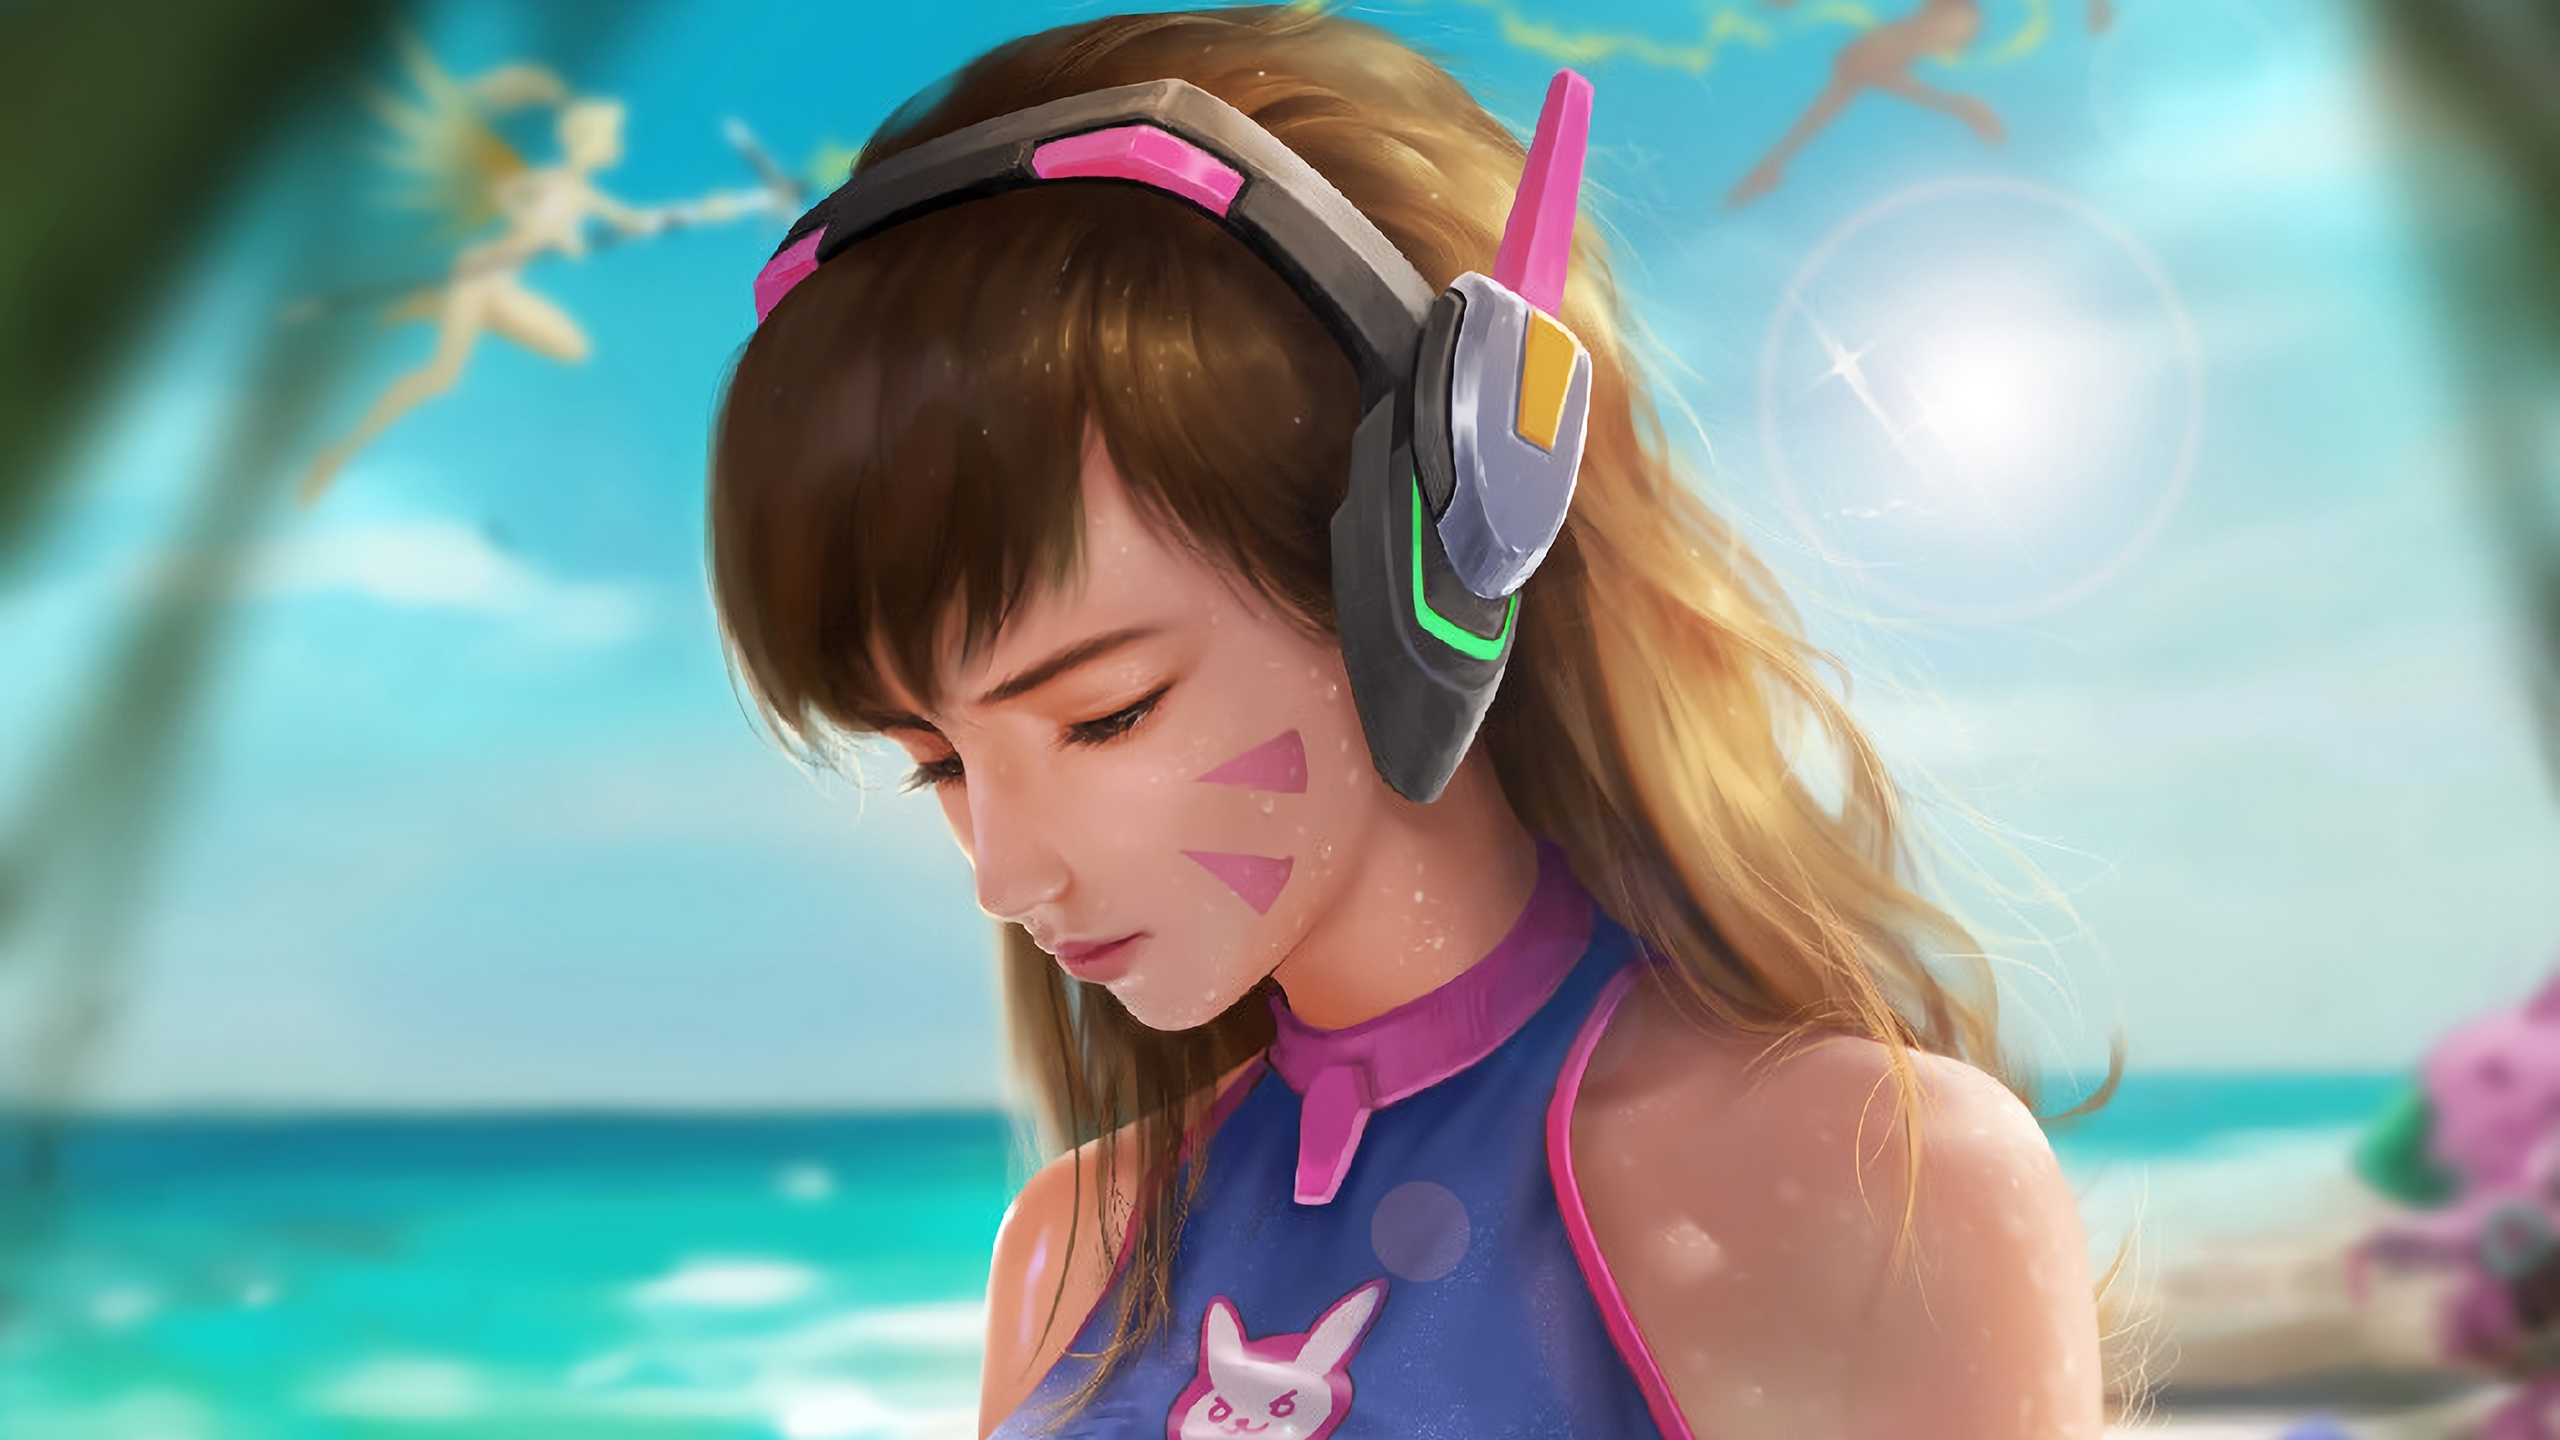 Dva Overwatch Beach Hd Games 4k Wallpapers Images Backgrounds Photos And Pictures